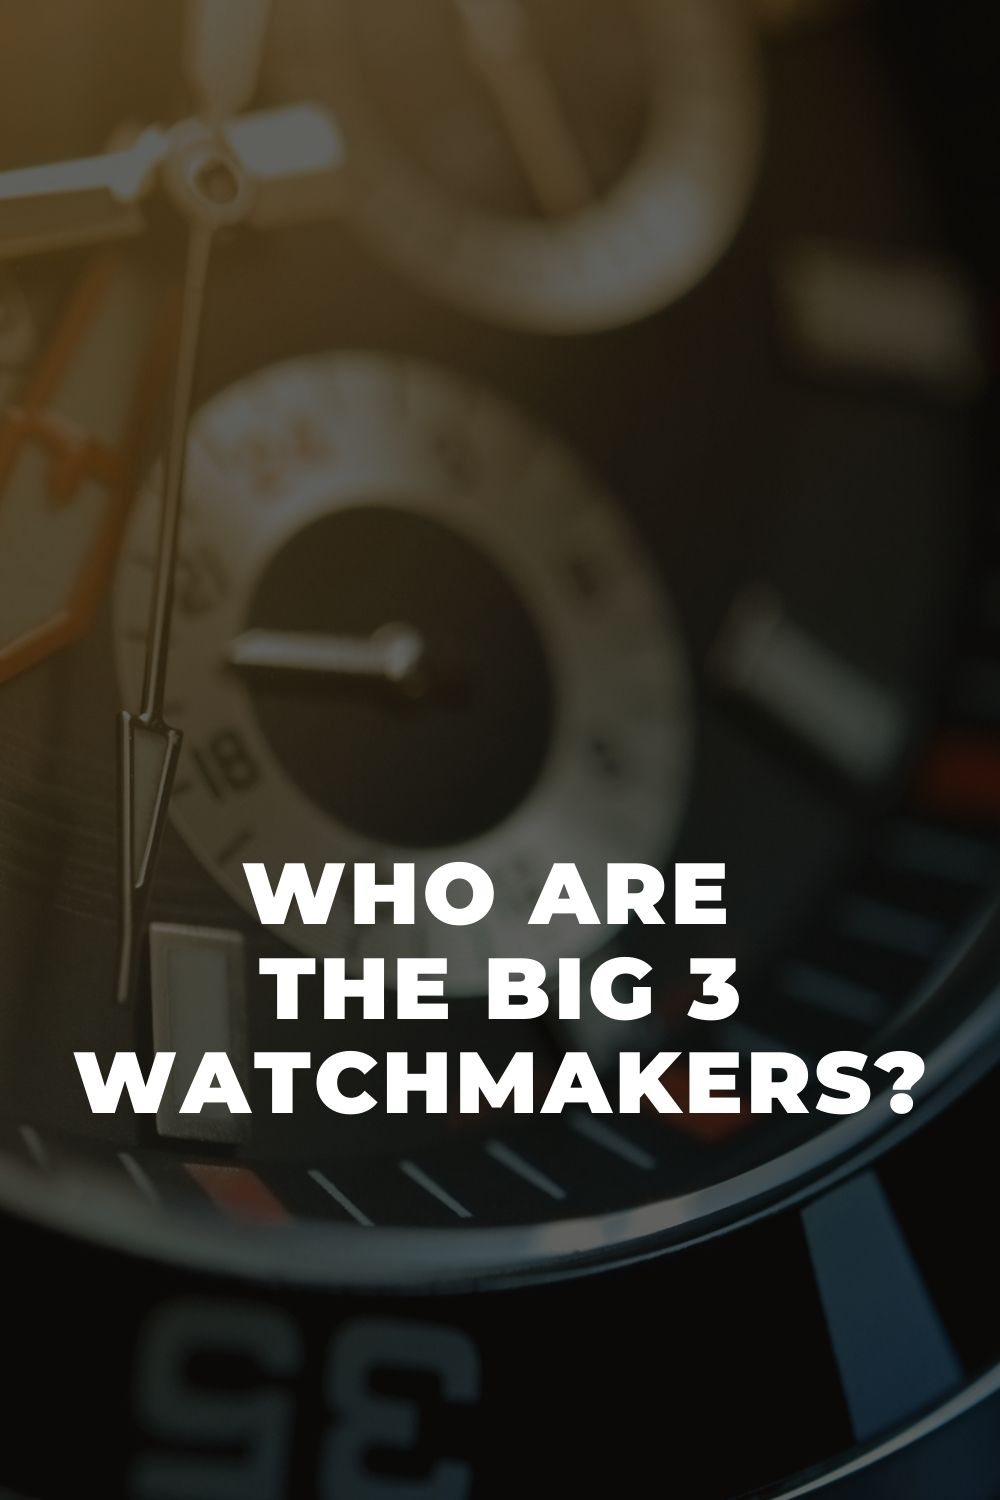 Who Are the Big 3 Watchmakers?